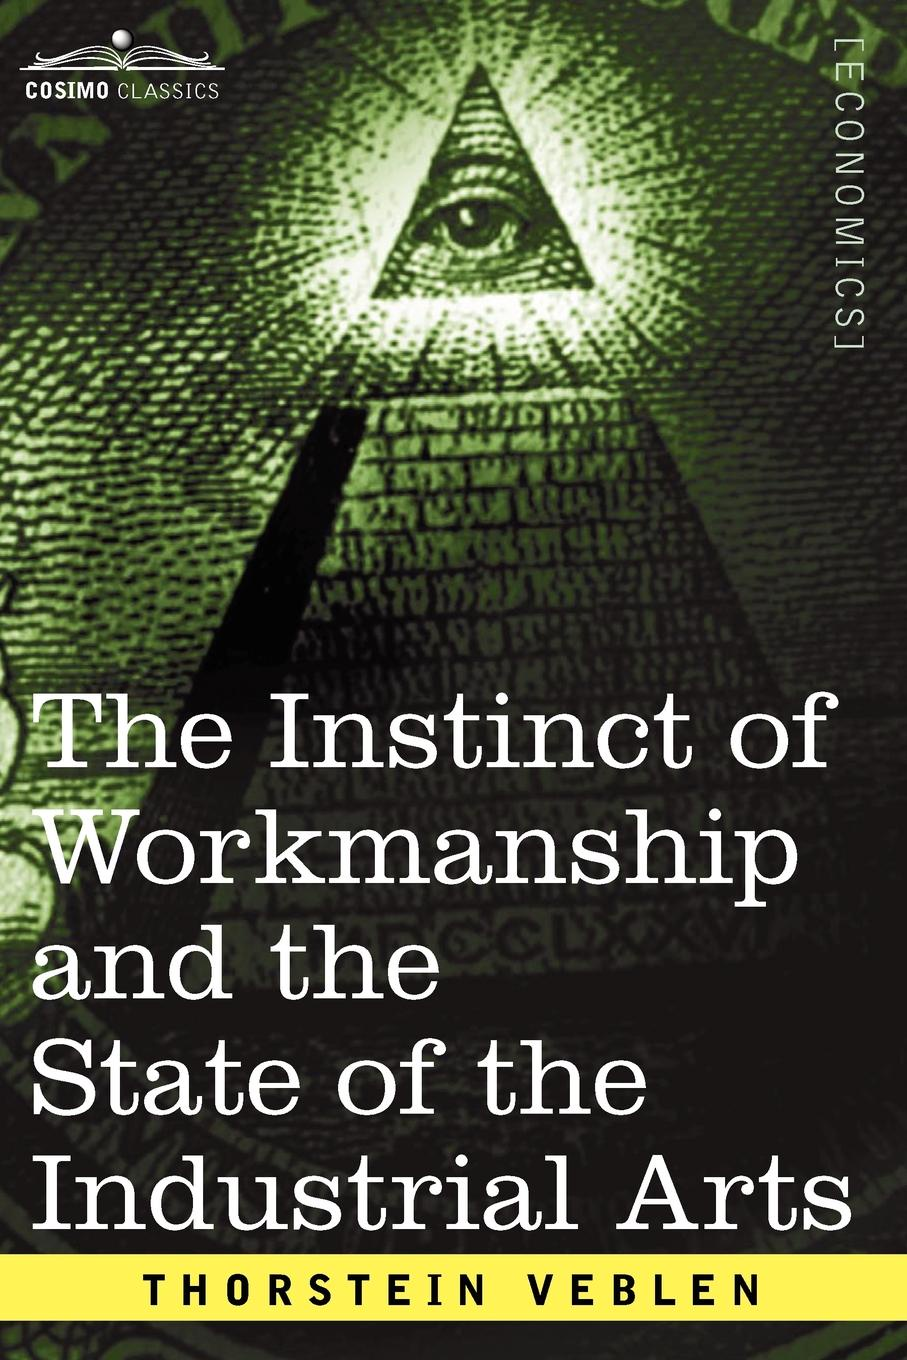 Thorstein Veblen The Instinct of Workmanship and the State of the Industrial Arts thorstein veblen the theory of the leisure class